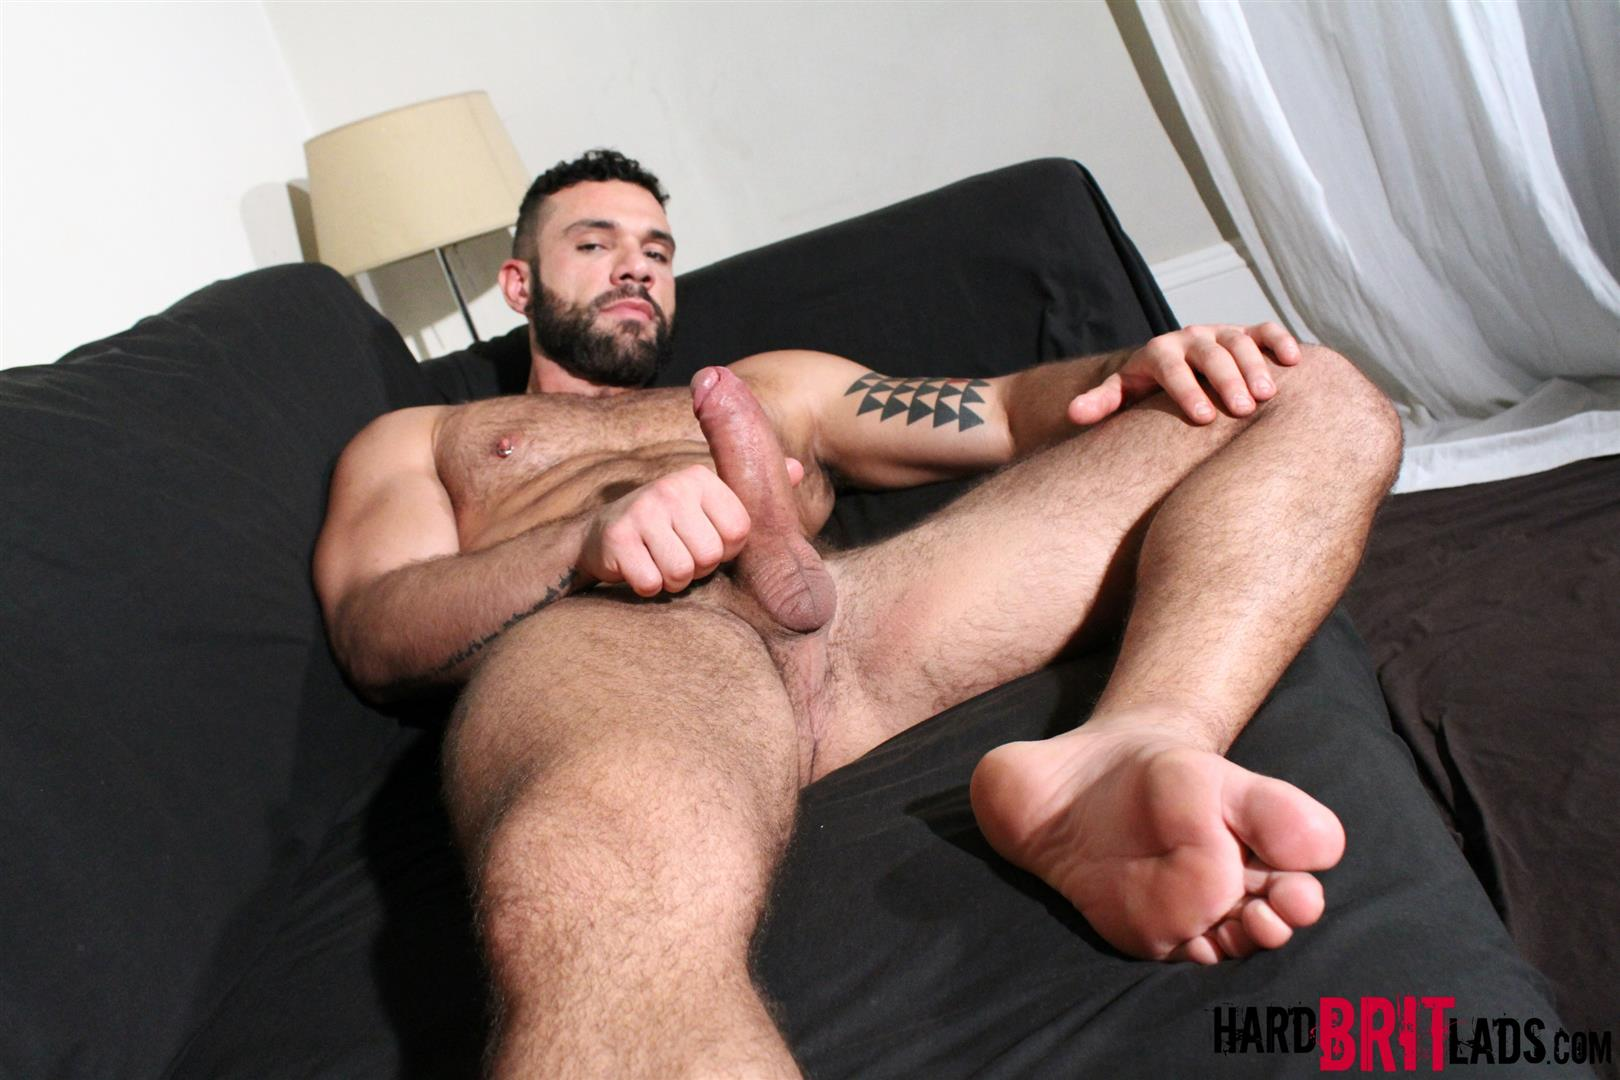 Hard Brit Lads Letterio Amadeo Hairy Rugby Player With A Big uncut Cock Amateur Gay Porn 11 Beefy Hairy Muscle Rugby Player Playing With His Big Uncut Cock